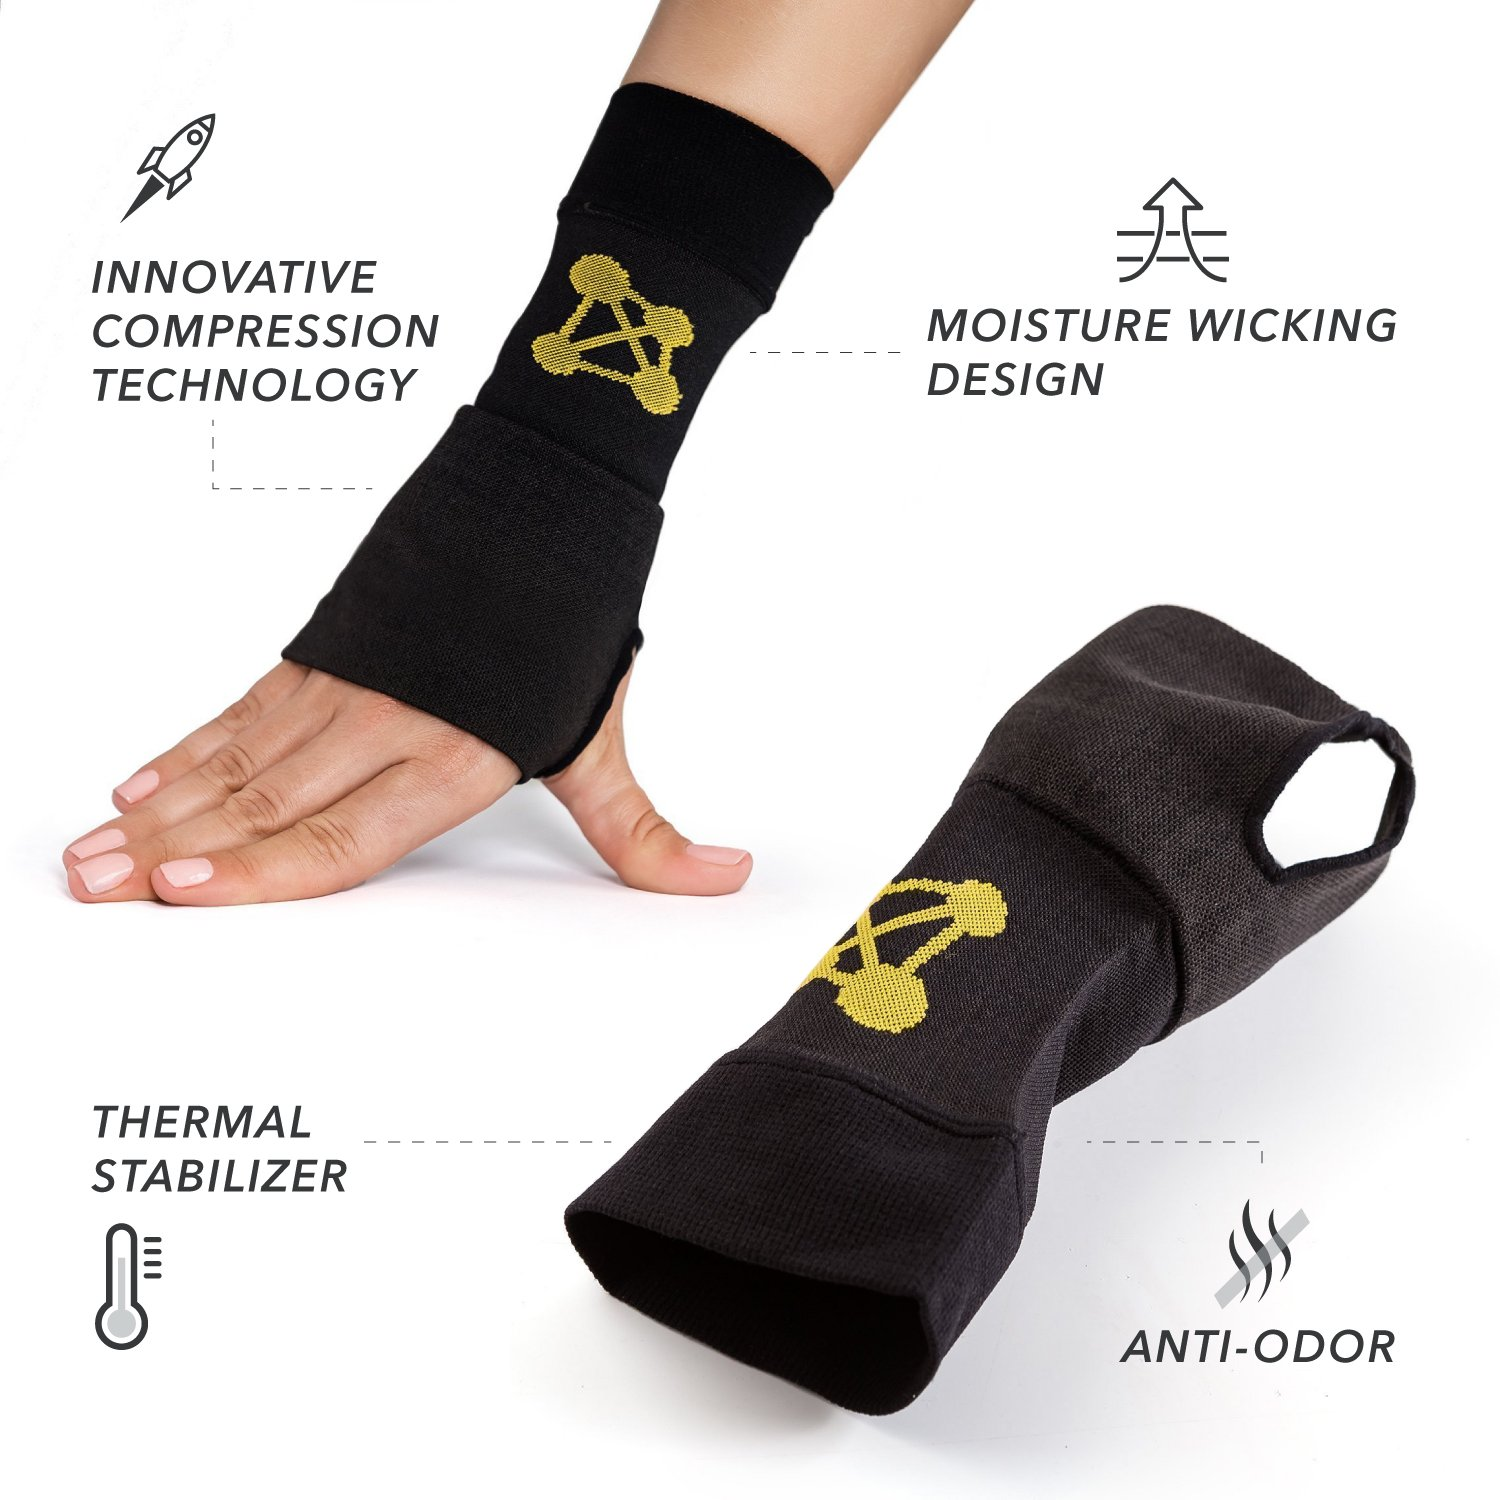 CopperJoint Copper-Infused Compression Wrist Sleeve, High-Performance Design Promotes Improved Circulation to Help Reduce Inflammation and Pain, Single Sleeve (Right, Small) by CopperJoint (Image #3)